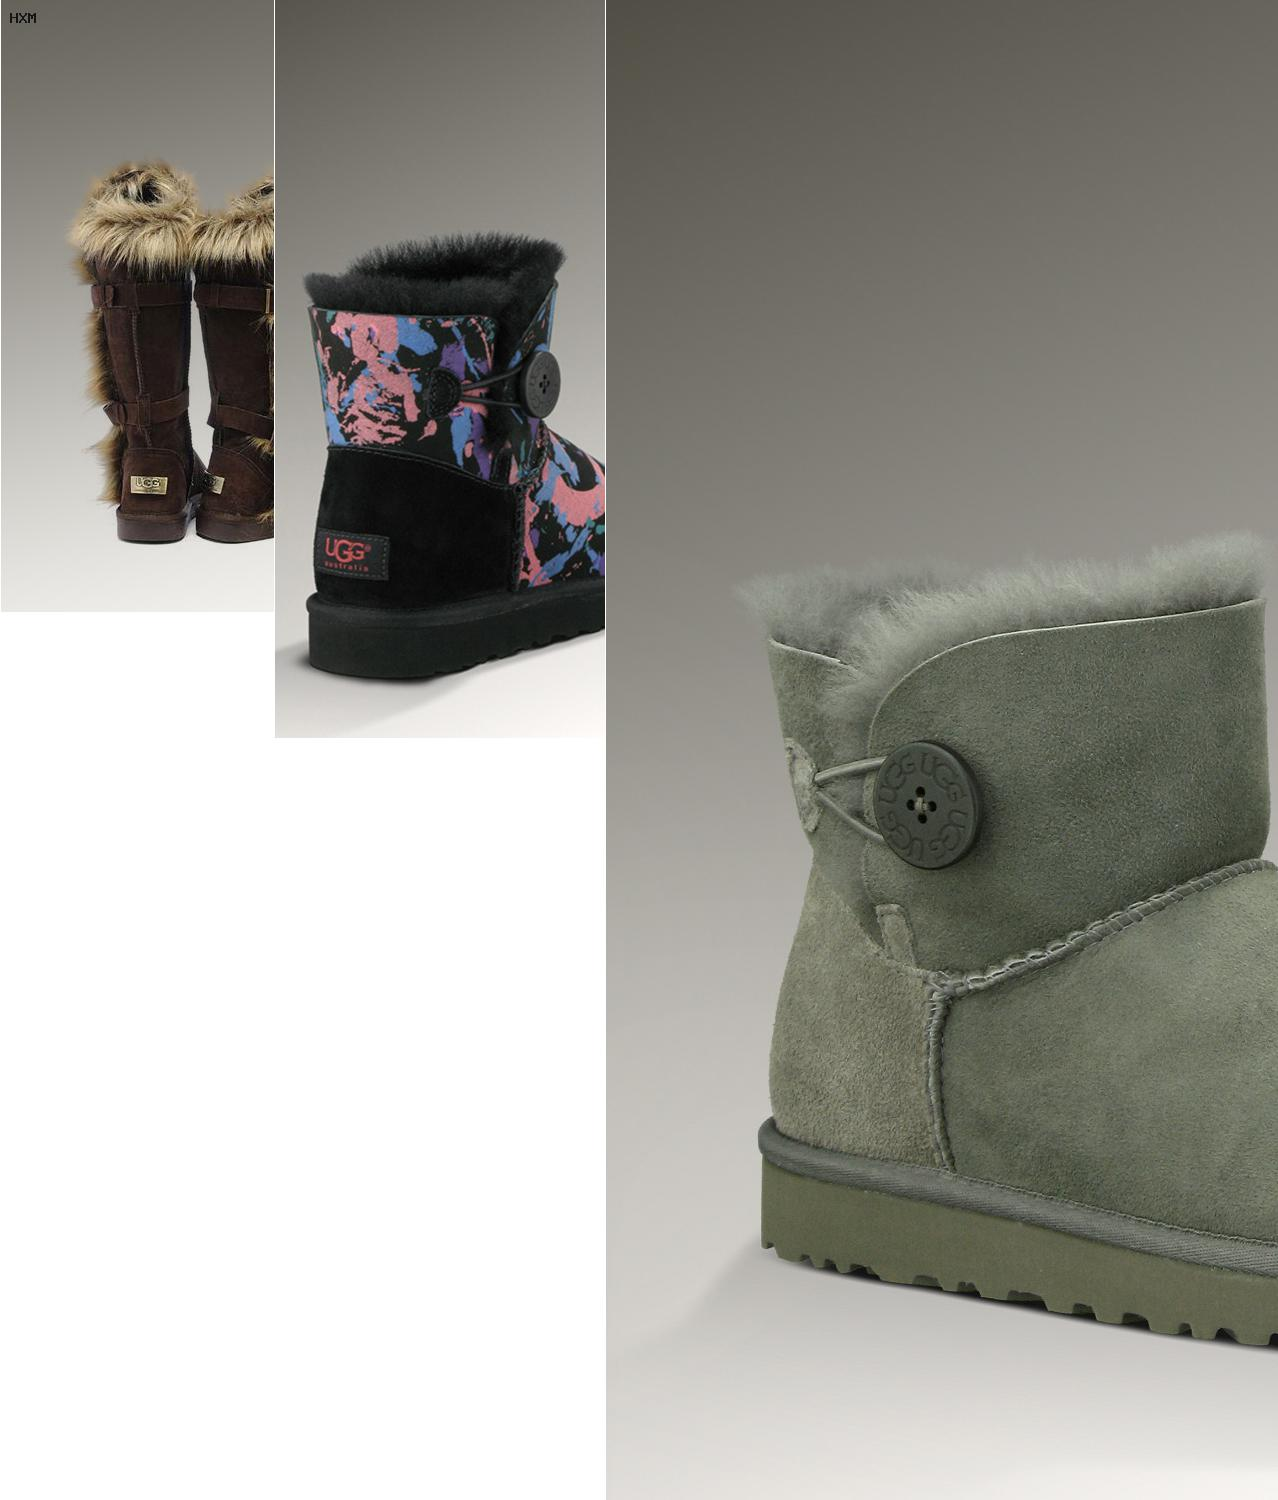 f98bf2cec84632 purchase ugg boots mini bailey button kinder uk 7373d a5ed3